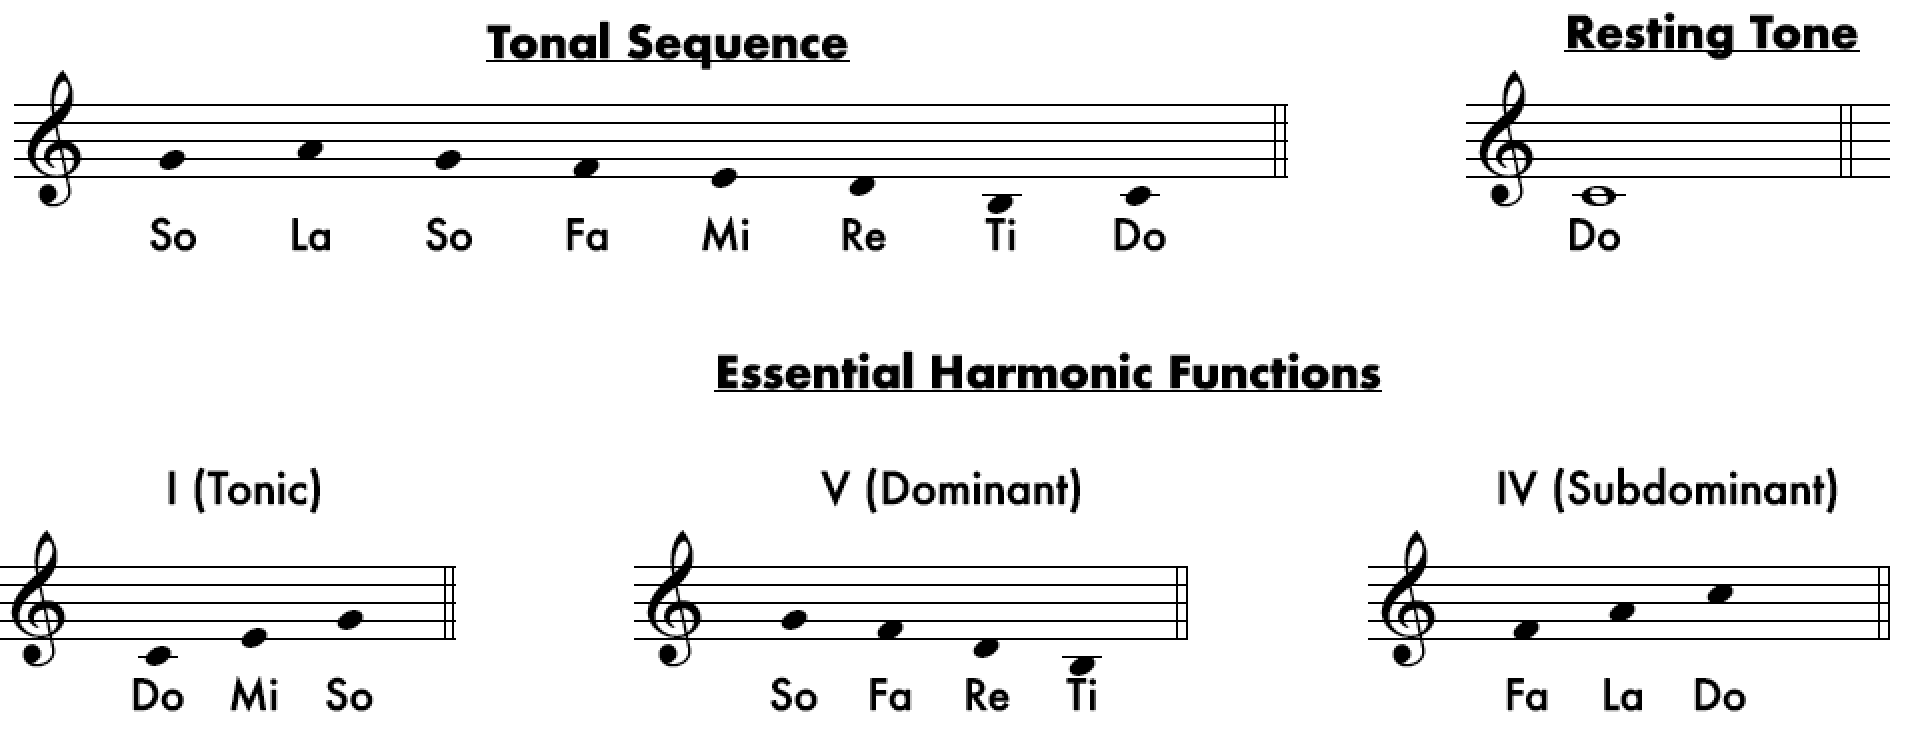 Major Tonality - From Major to Locrian: An Overview of The Tonalities